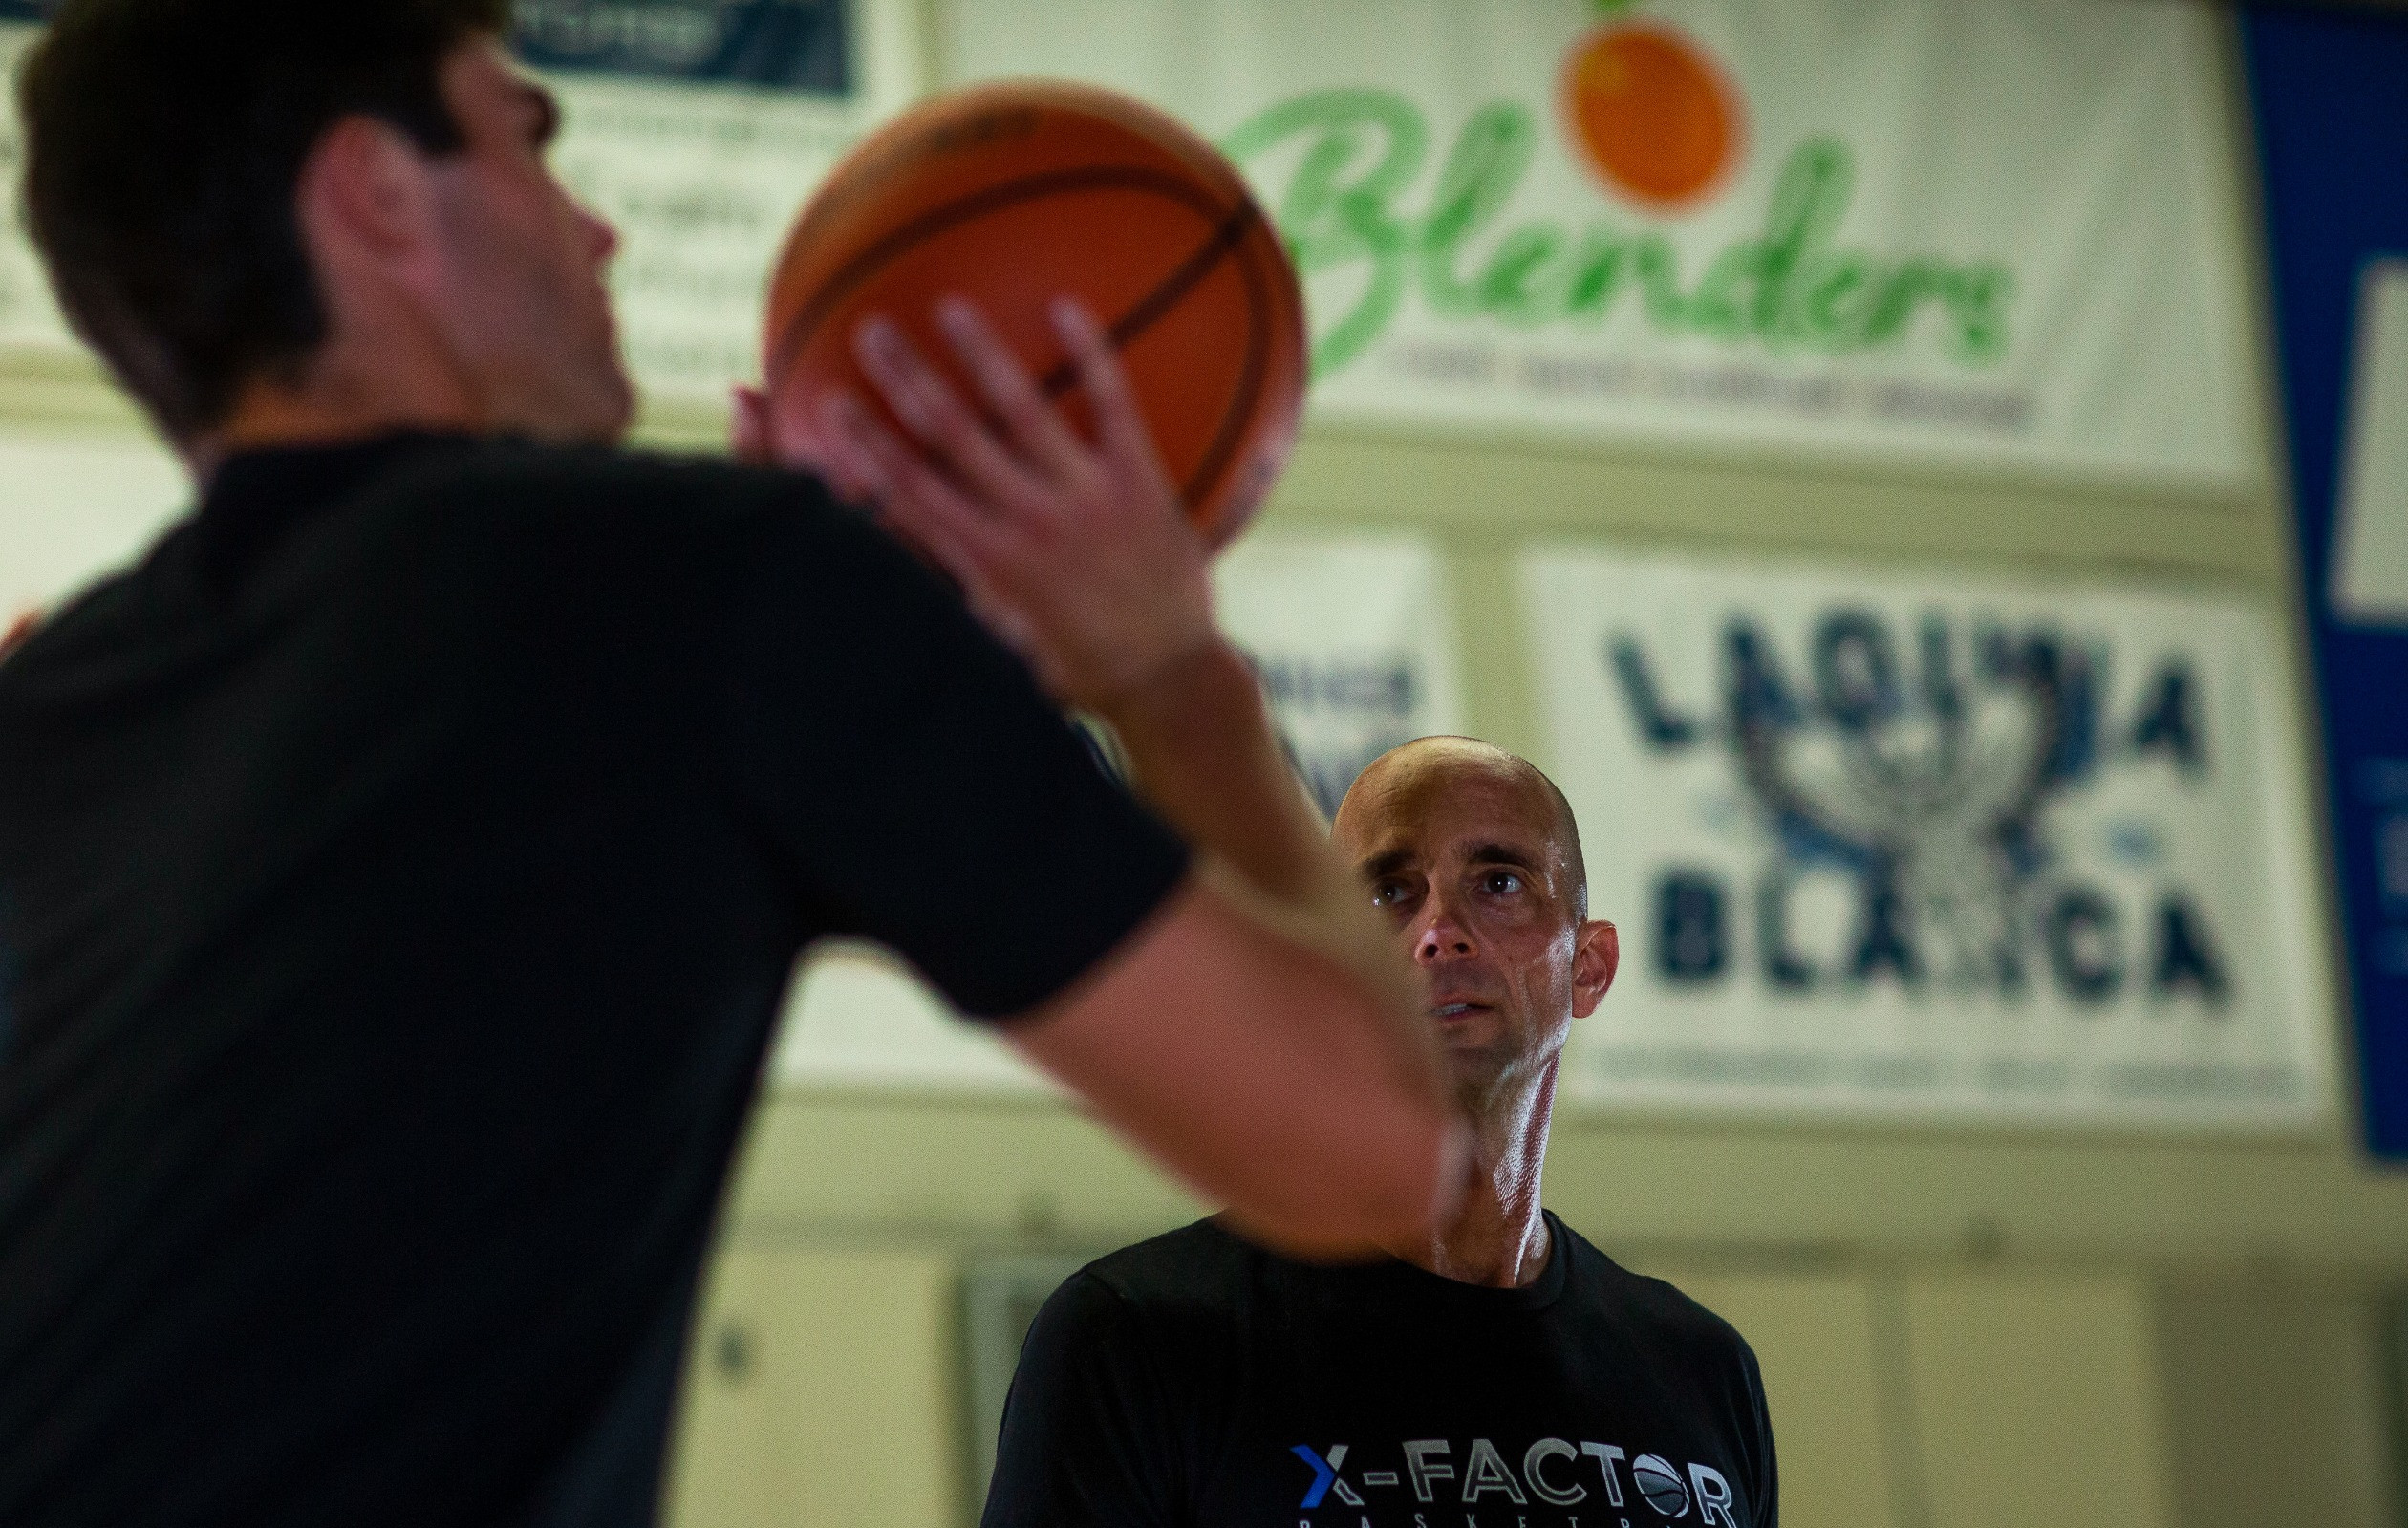 1-on-1 training with Coach Z